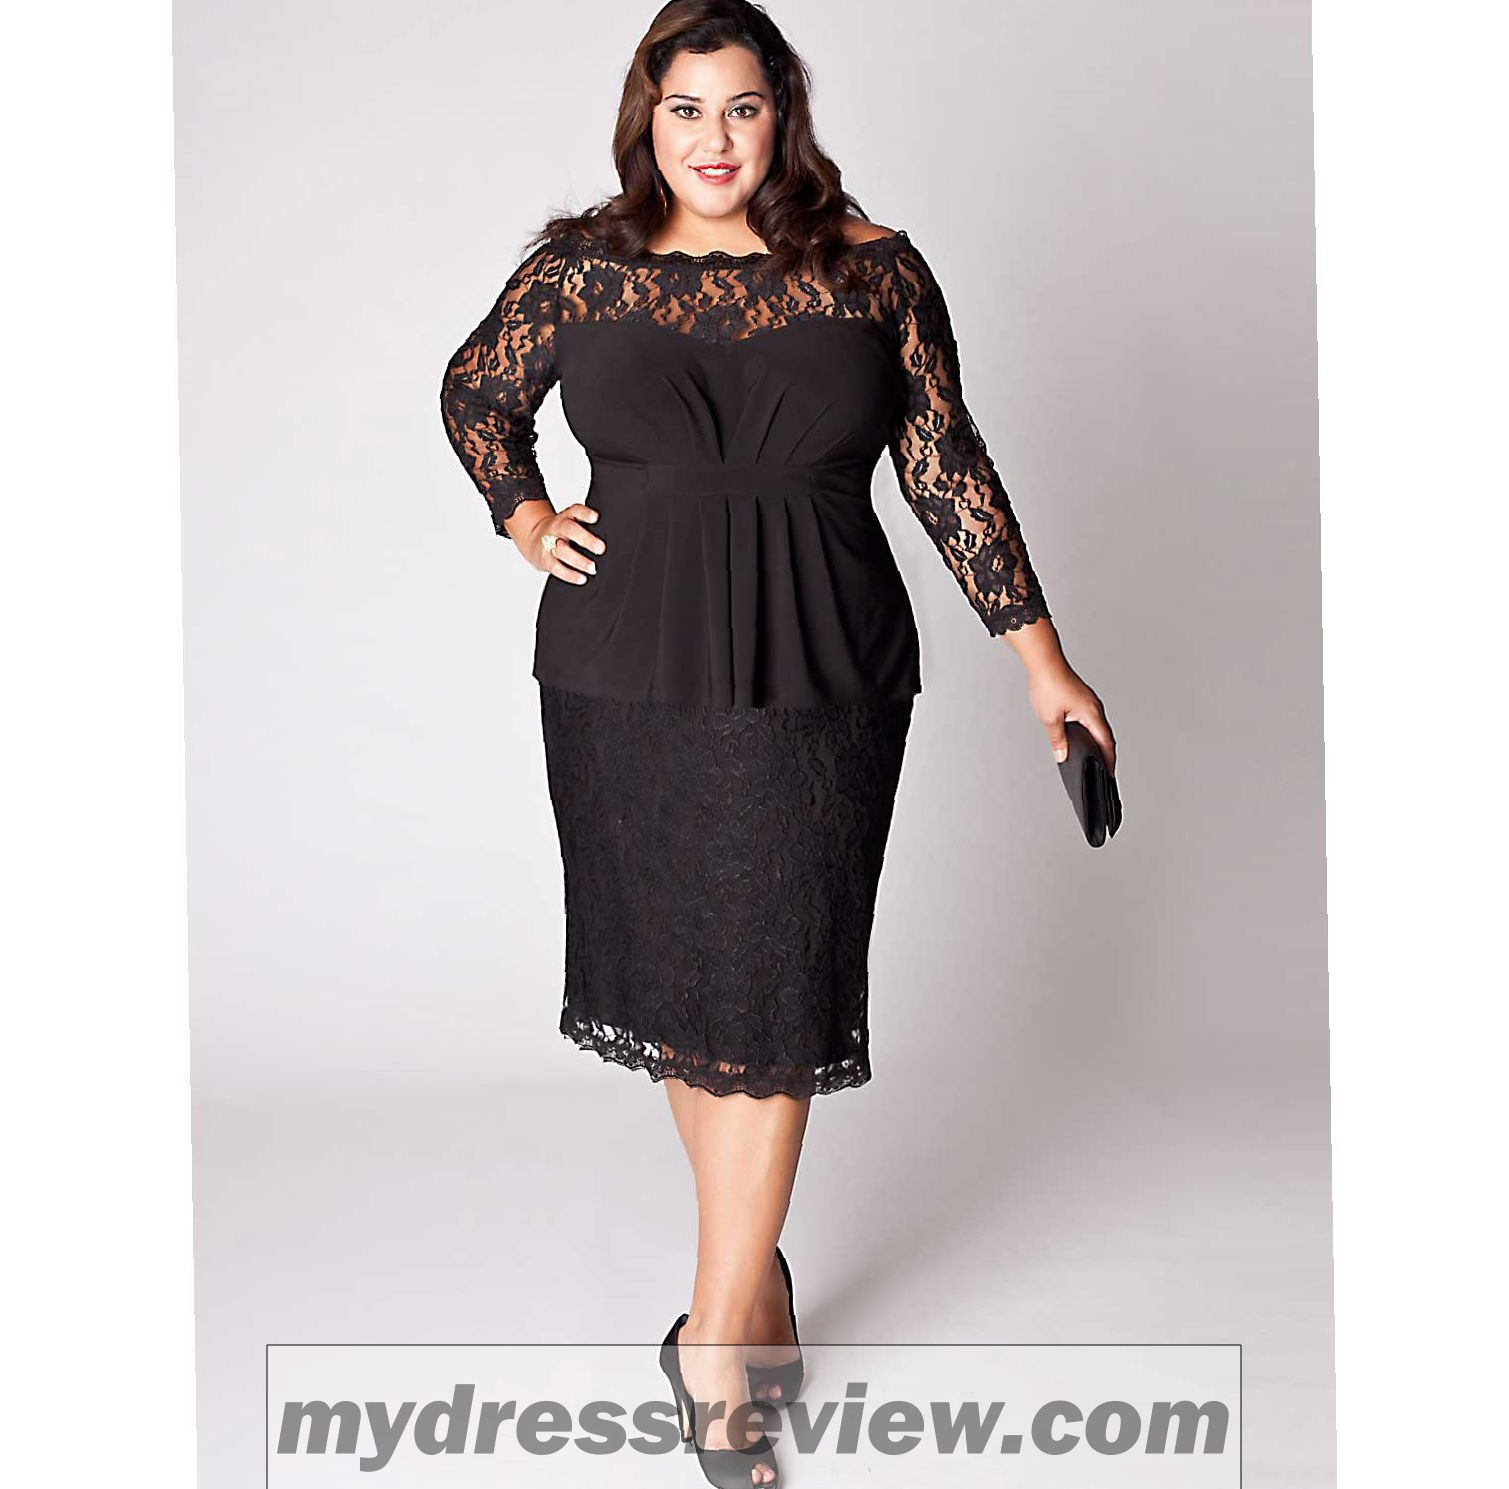 Sexy Plus Size Dresses Cheap : Trend 2017-2018 - MyDressReview